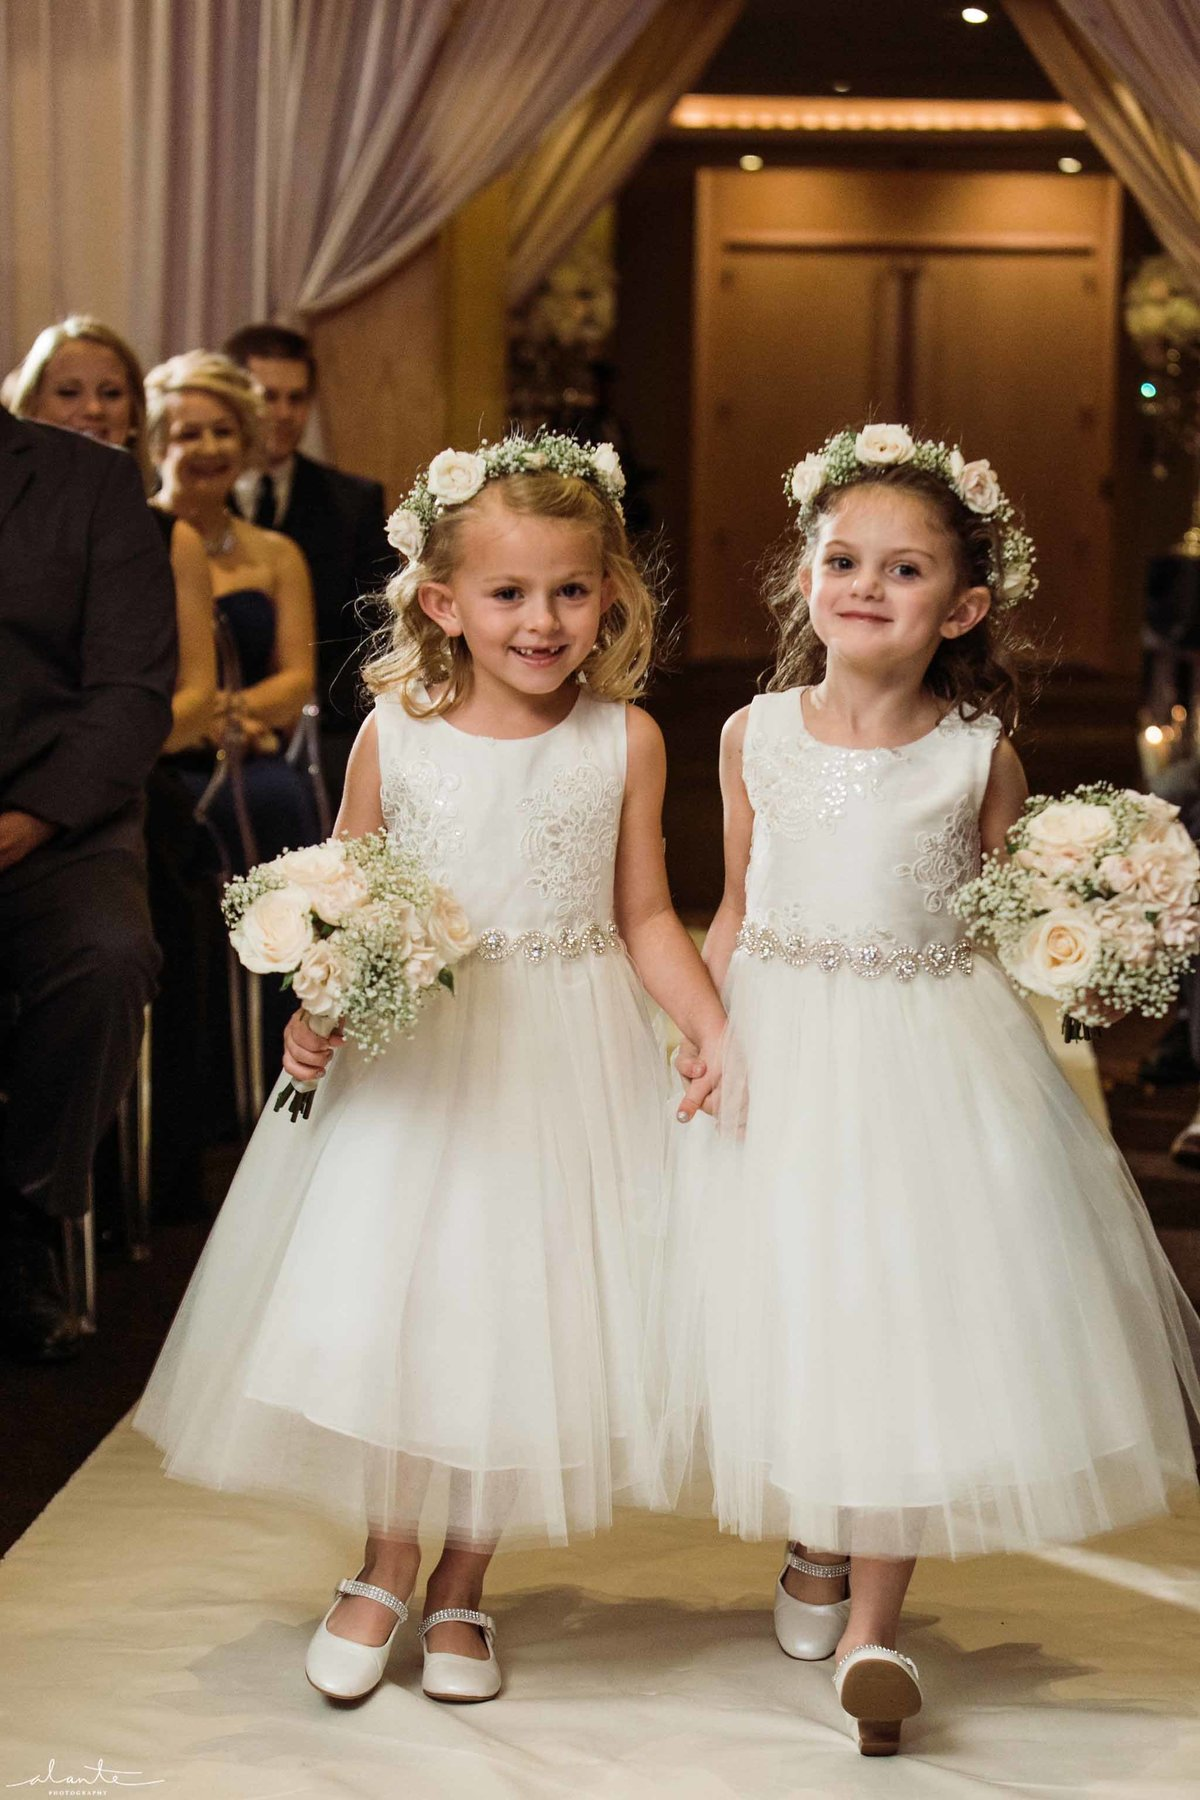 Darling flower girls with white flower crowns and small floral posies.